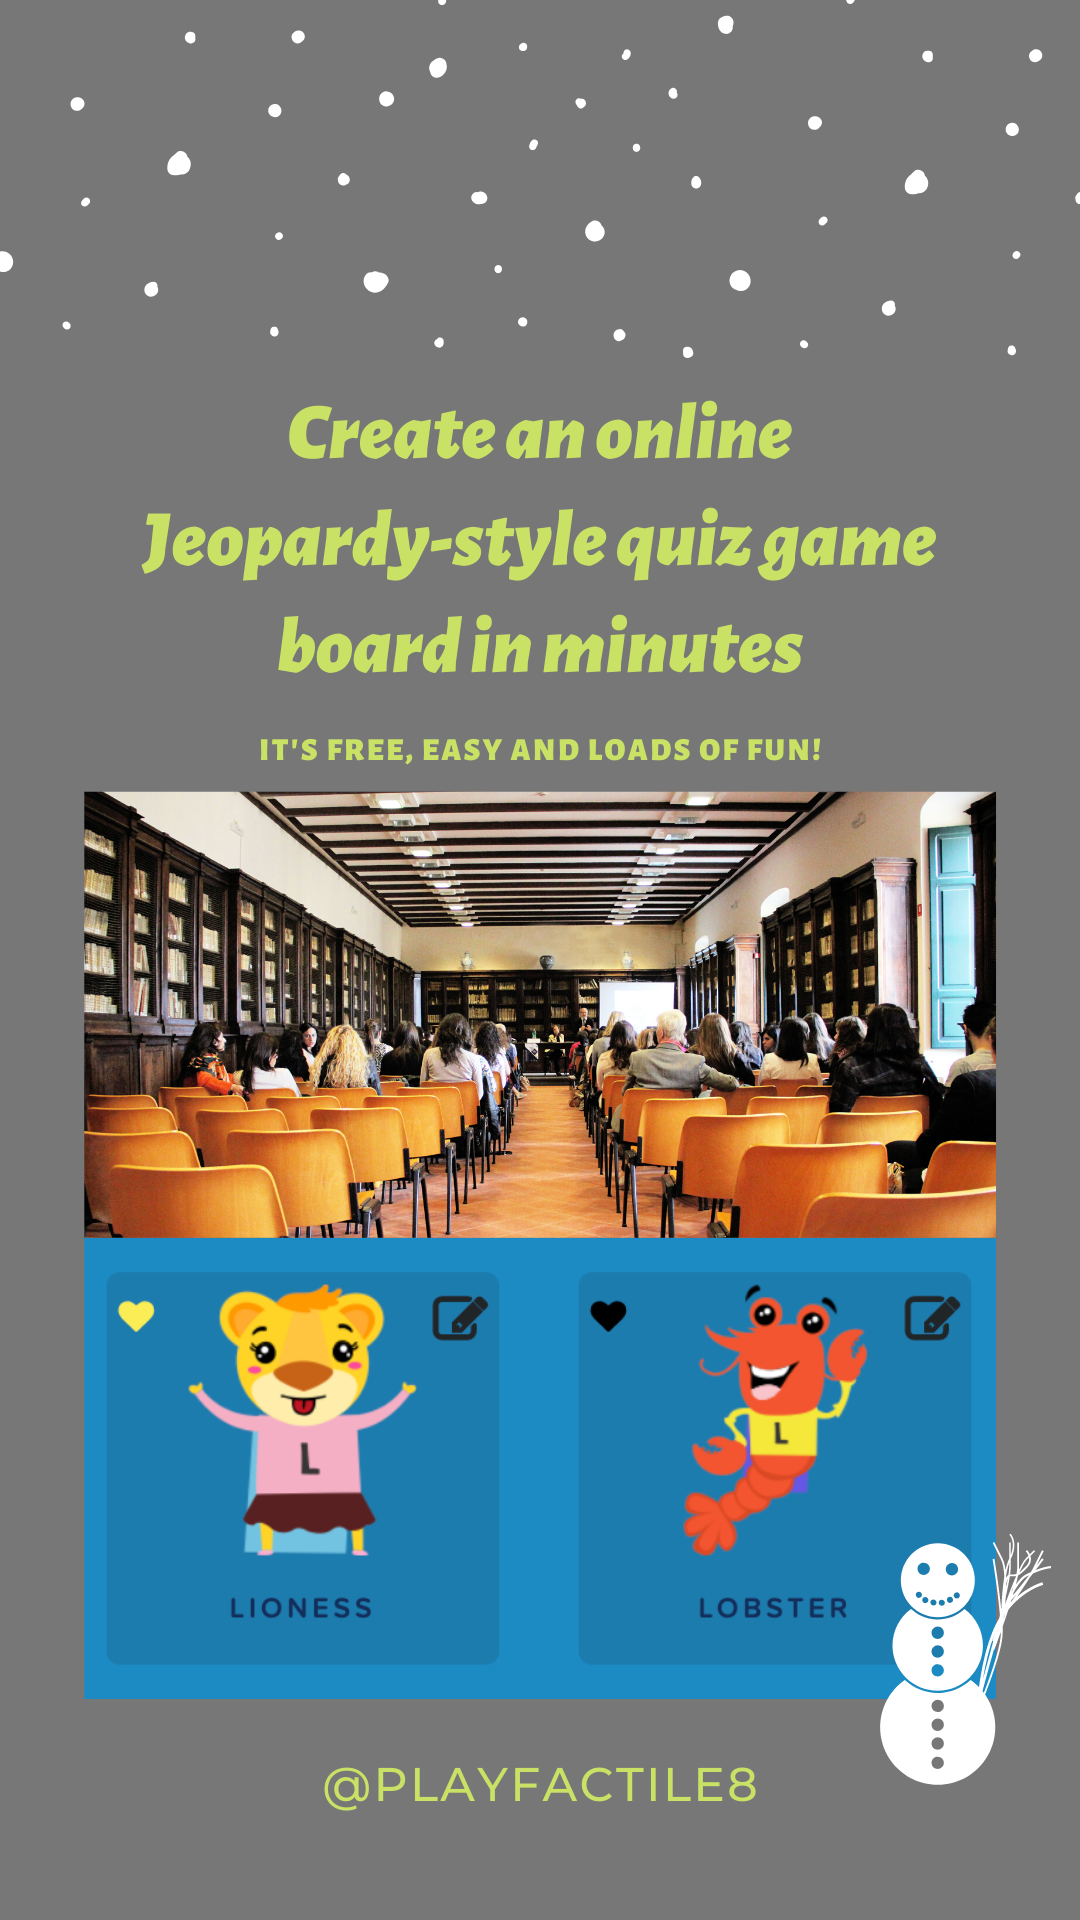 Create an online Jeopardystyle quiz game board in